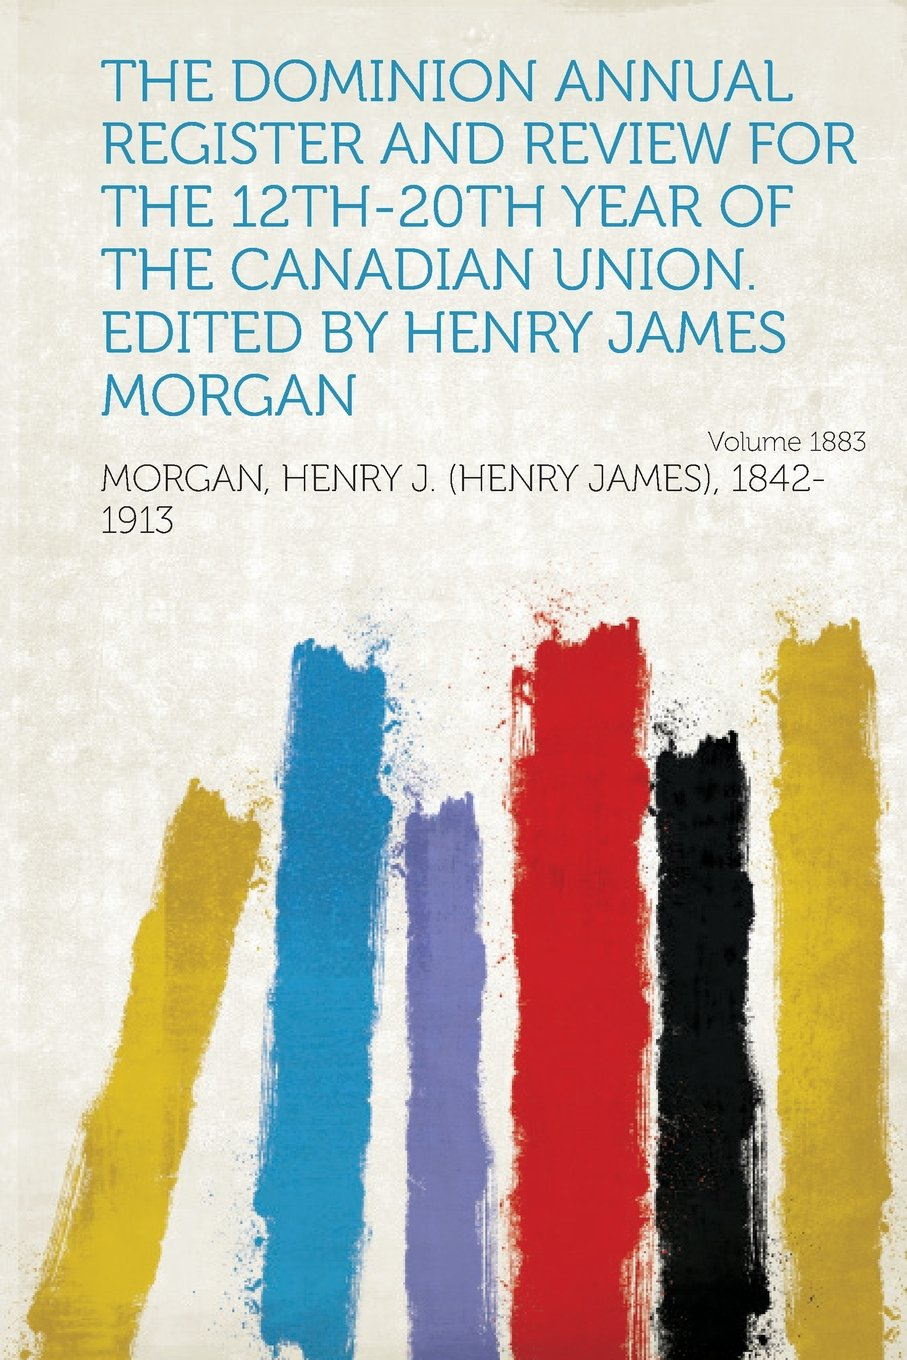 The Dominion Annual Register and Review for the 12th-20th Year of the Canadian Union. Edited by Henry James Morgan Year 1883 pdf epub